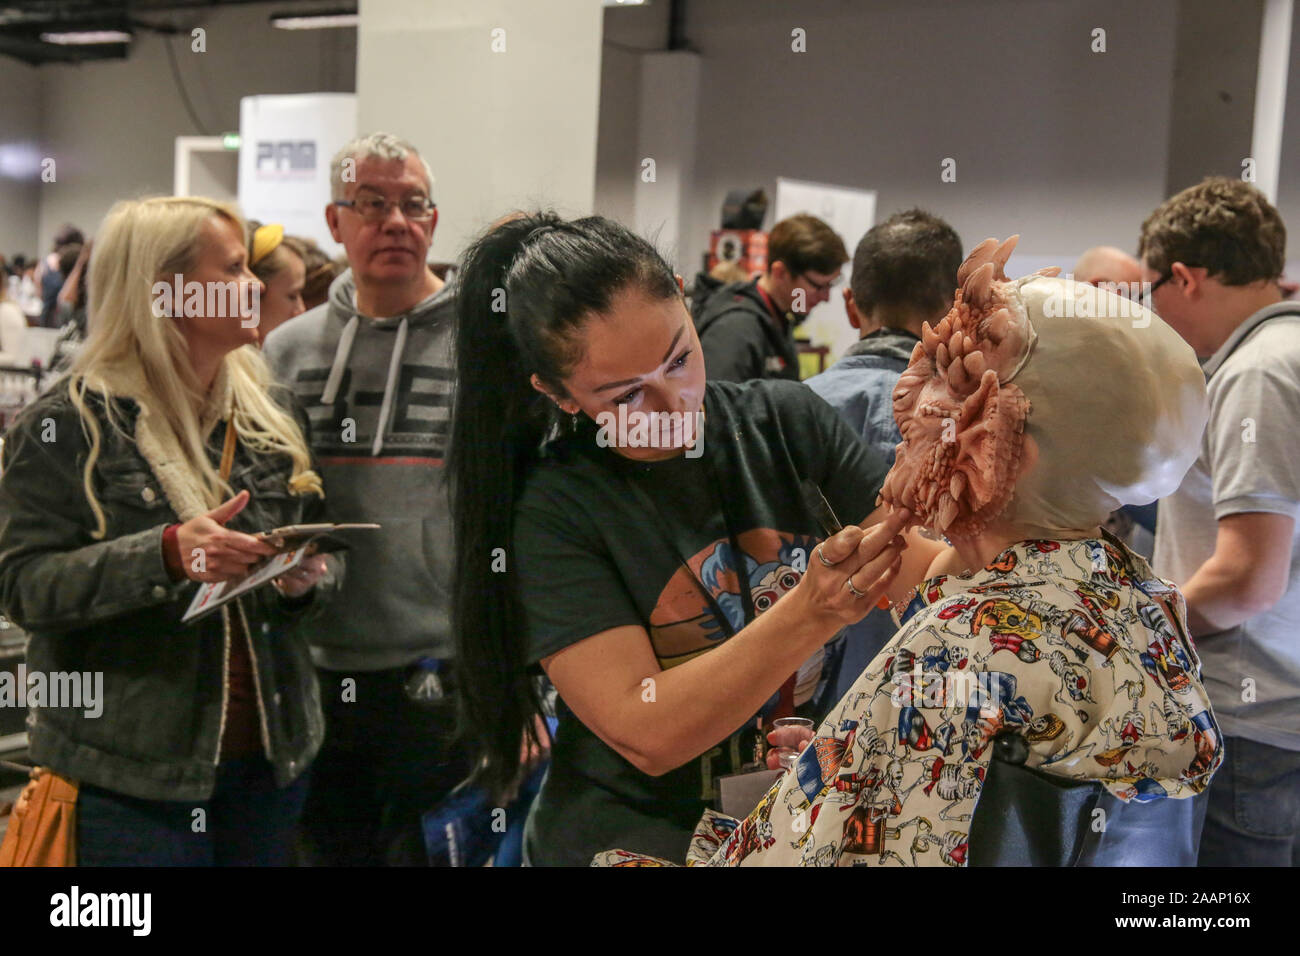 Coventry Uk 23rd Nov 2019 The Sixth Annual Event Billed As The Educational Event For Prosthetic